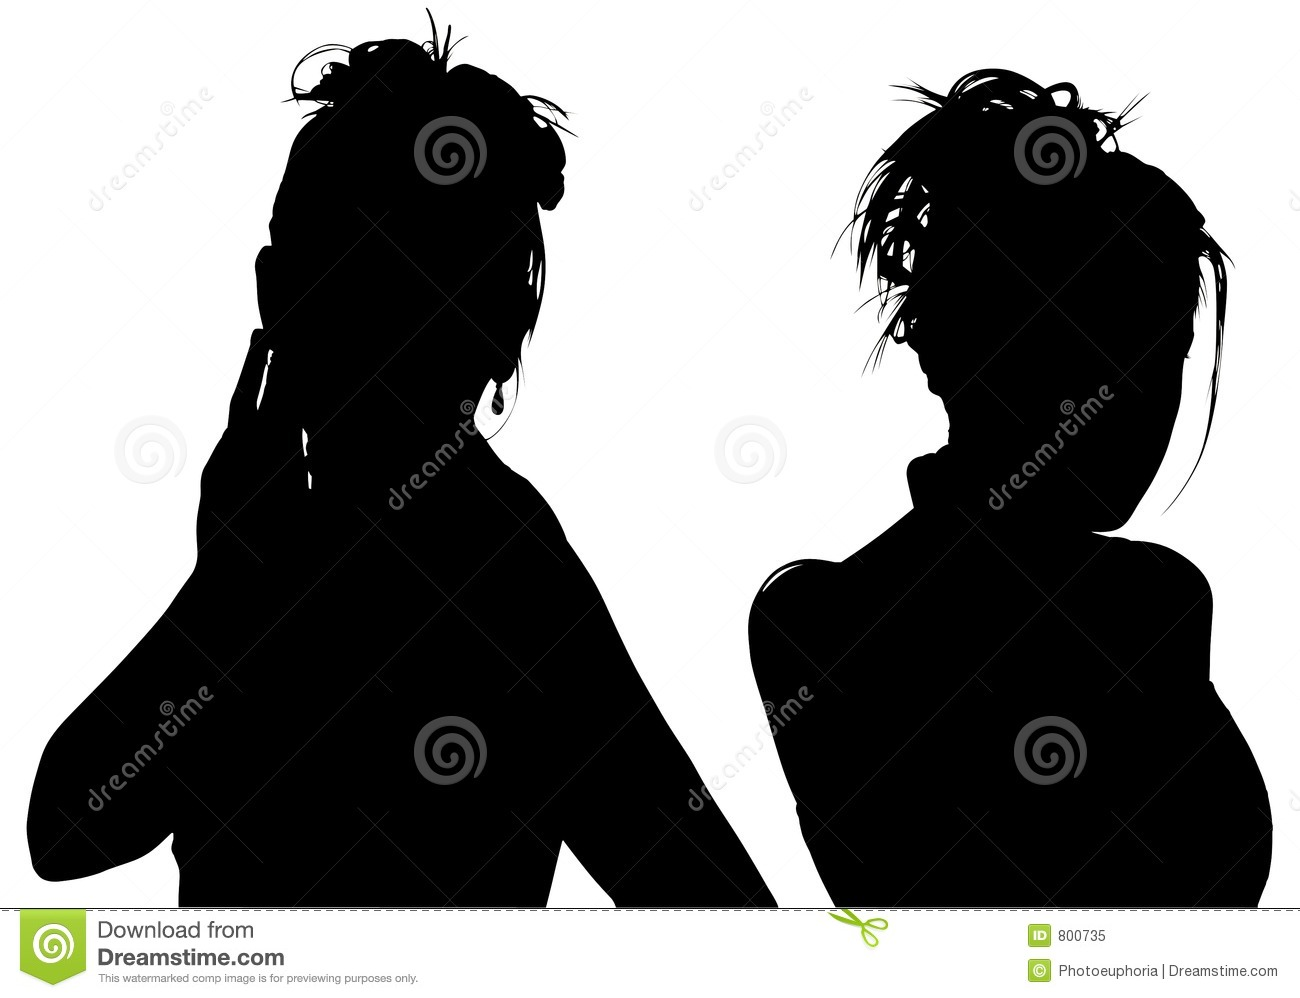 Silhouette With Clipping Path of Two Women